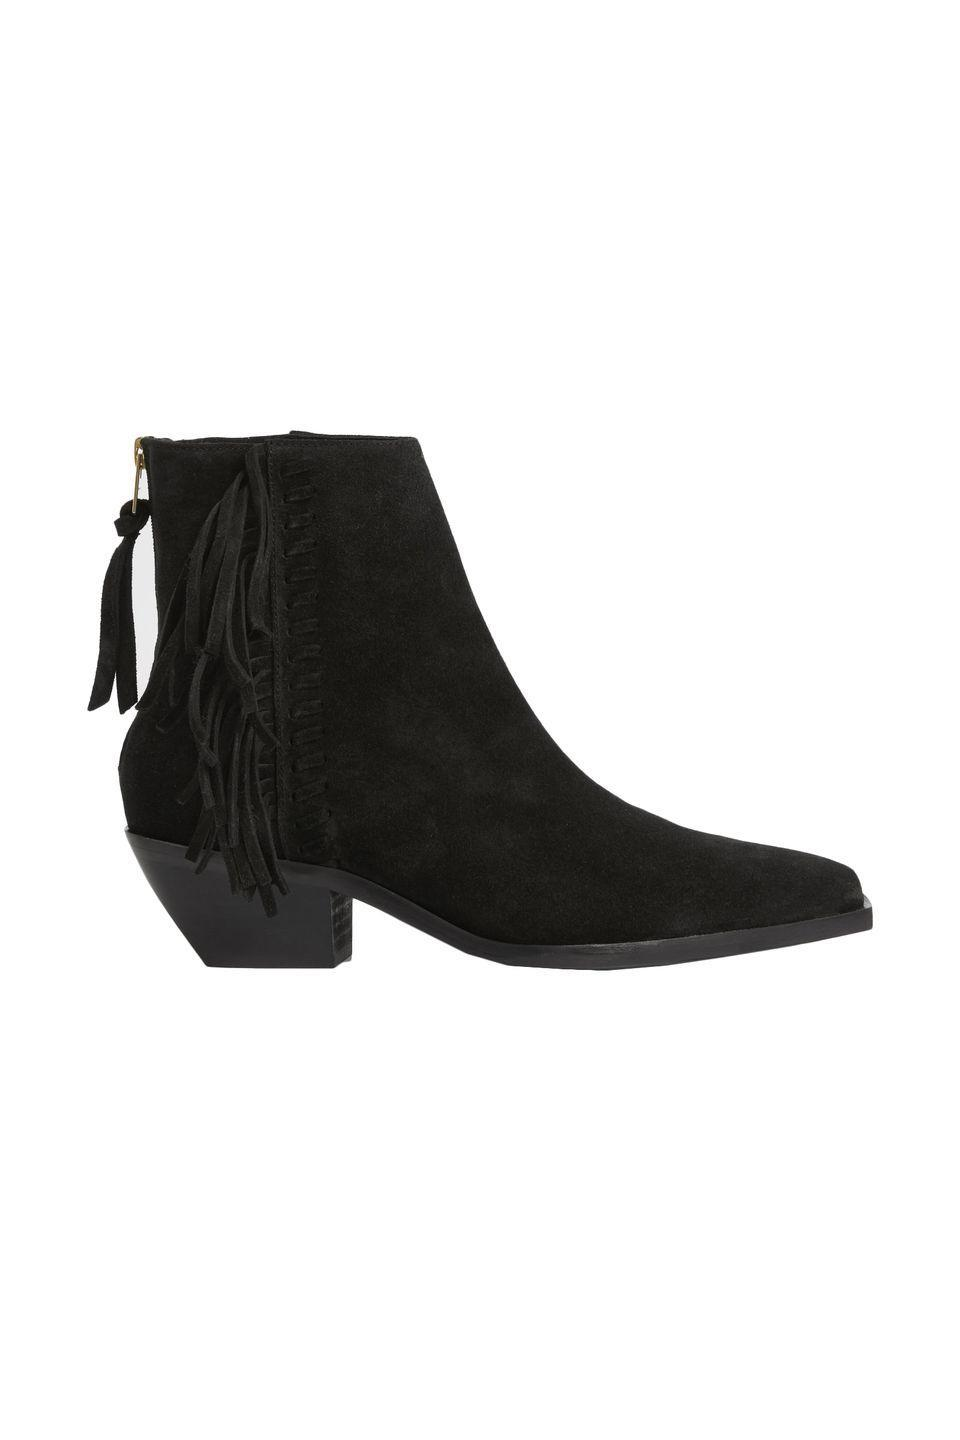 """<p><a class=""""link rapid-noclick-resp"""" href=""""https://go.redirectingat.com?id=127X1599956&url=https%3A%2F%2Fwww.allsaints.com%2Fwomen%2Fboots-and-shoes%2Fallsaints-layla-fringe-boot%2F&sref=https%3A%2F%2Fwww.harpersbazaar.com%2Fuk%2Ffashion%2Fwhat-to-wear%2Fg18720504%2Fbest-cowboy-boots%2F"""" rel=""""nofollow noopener"""" target=""""_blank"""" data-ylk=""""slk:SHOP NOW"""">SHOP NOW</a></p><p>Just like Saint Laurent in the Hedi Slimane days, AllSaints always stays true to its distinctively rock 'n' roll aesthetic – which, as it happens, incorporates a few western design elements. It's evolved, of course; so while these fringed suede ankle boots would have looked great with skinny jeans a few years back, now we'll be teaming them with flares instead. </p><p>Suede fringed ankle boots, £269, <a href=""""https://go.redirectingat.com?id=127X1599956&url=https%3A%2F%2Fwww.allsaints.com%2Fwomen%2Fboots-and-shoes%2Fallsaints-layla-fringe-boot%2F&sref=https%3A%2F%2Fwww.harpersbazaar.com%2Fuk%2Ffashion%2Fwhat-to-wear%2Fg18720504%2Fbest-cowboy-boots%2F"""" rel=""""nofollow noopener"""" target=""""_blank"""" data-ylk=""""slk:allsaints.com"""" class=""""link rapid-noclick-resp"""">allsaints.com</a></p>"""